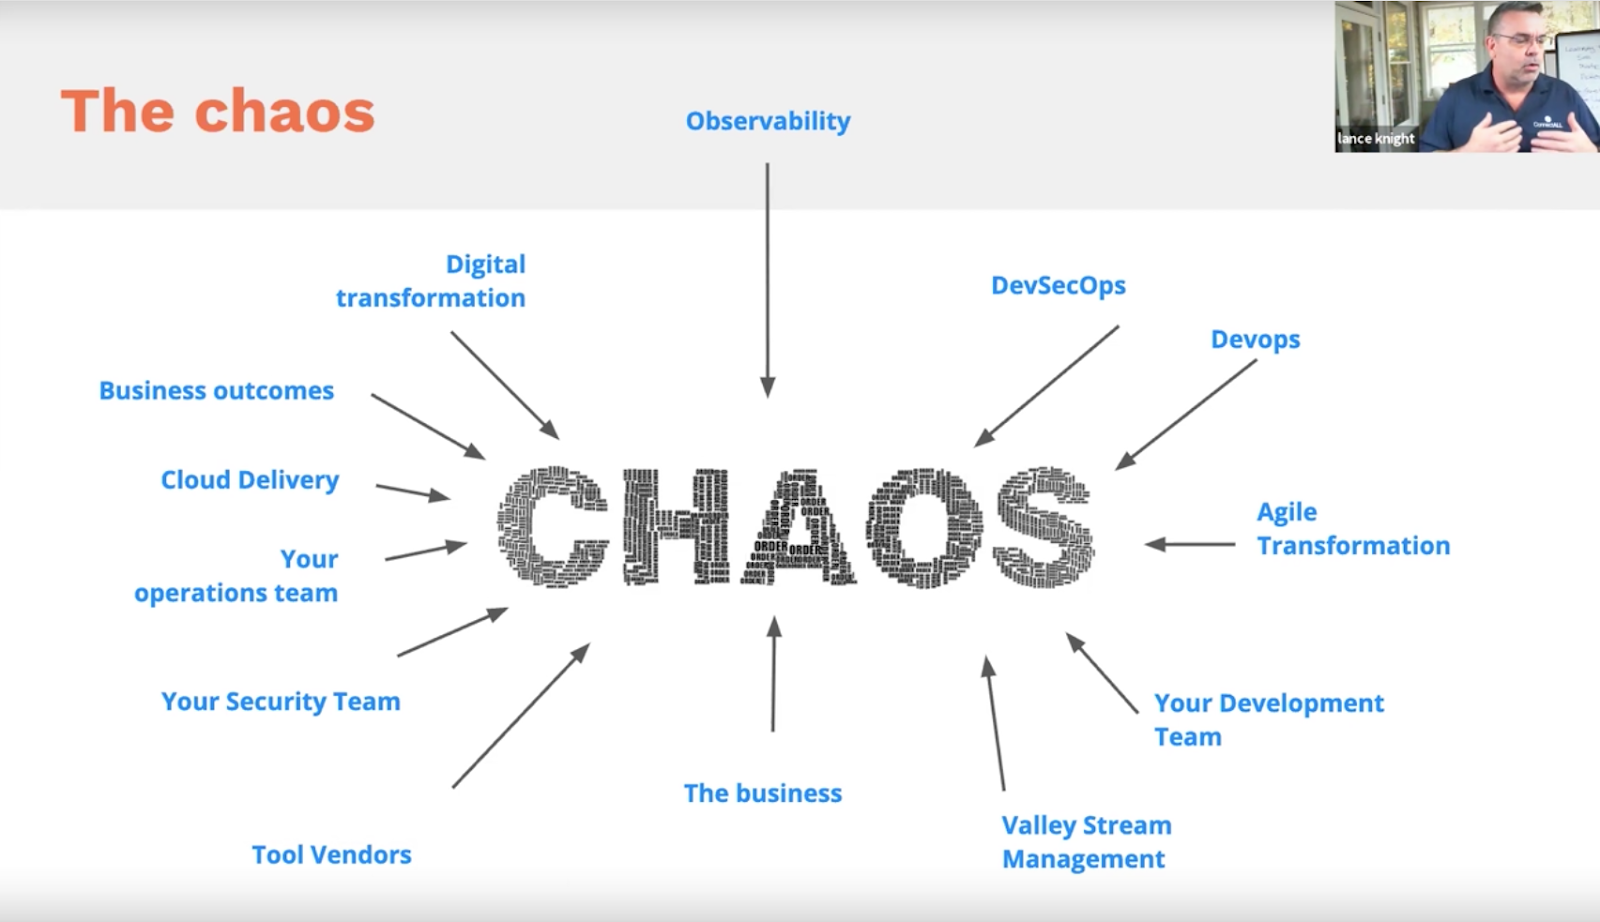 CIOs everywhere are faced with this chaos